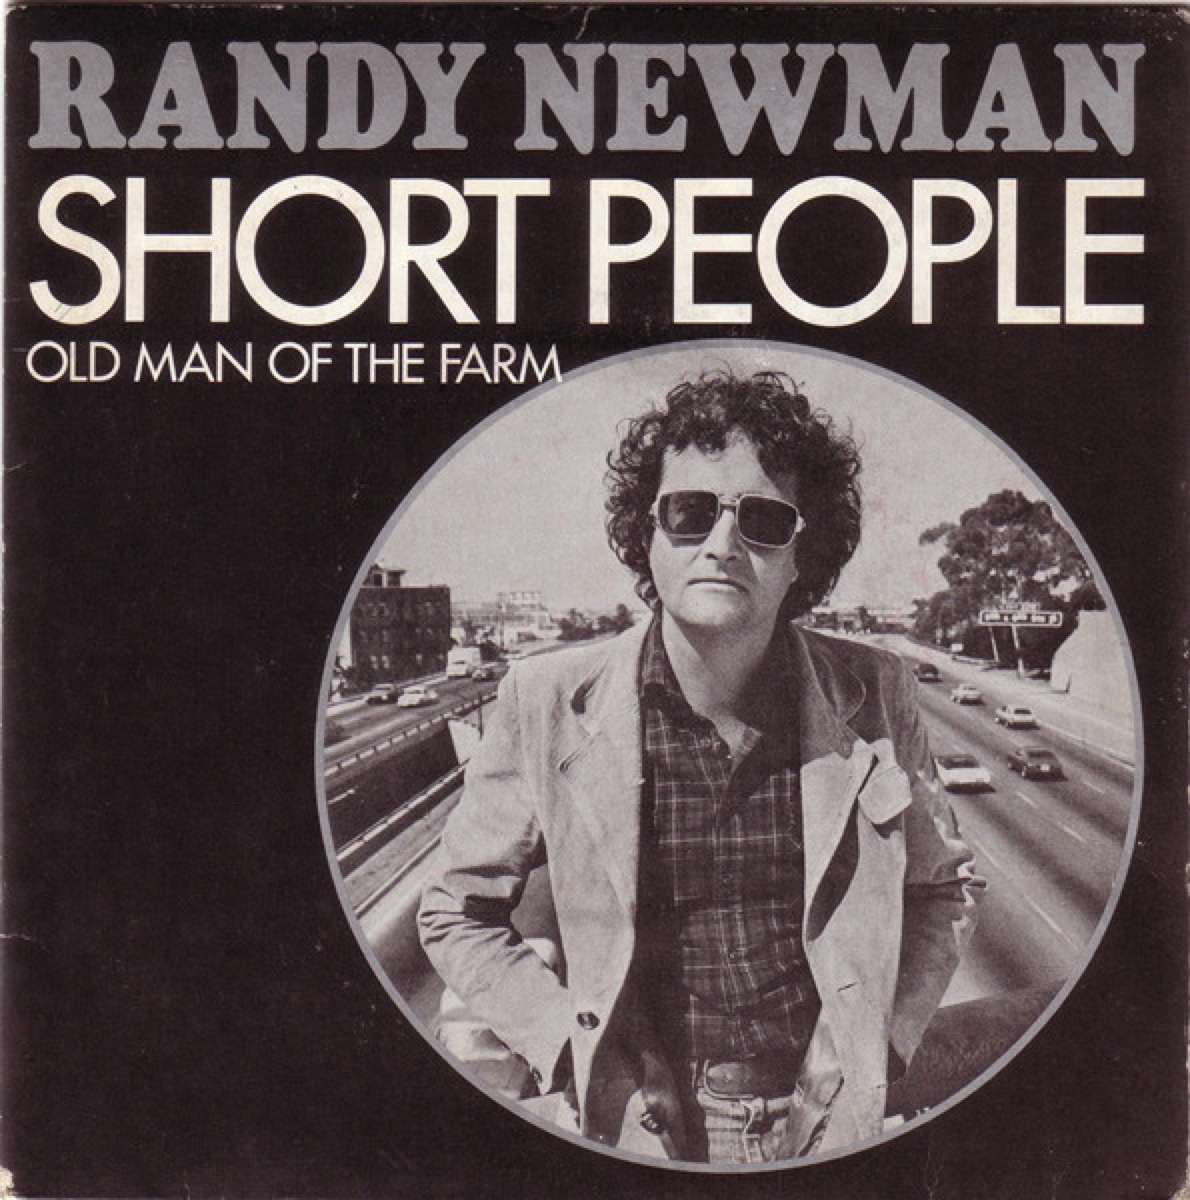 album cover for Randy Newman's short people